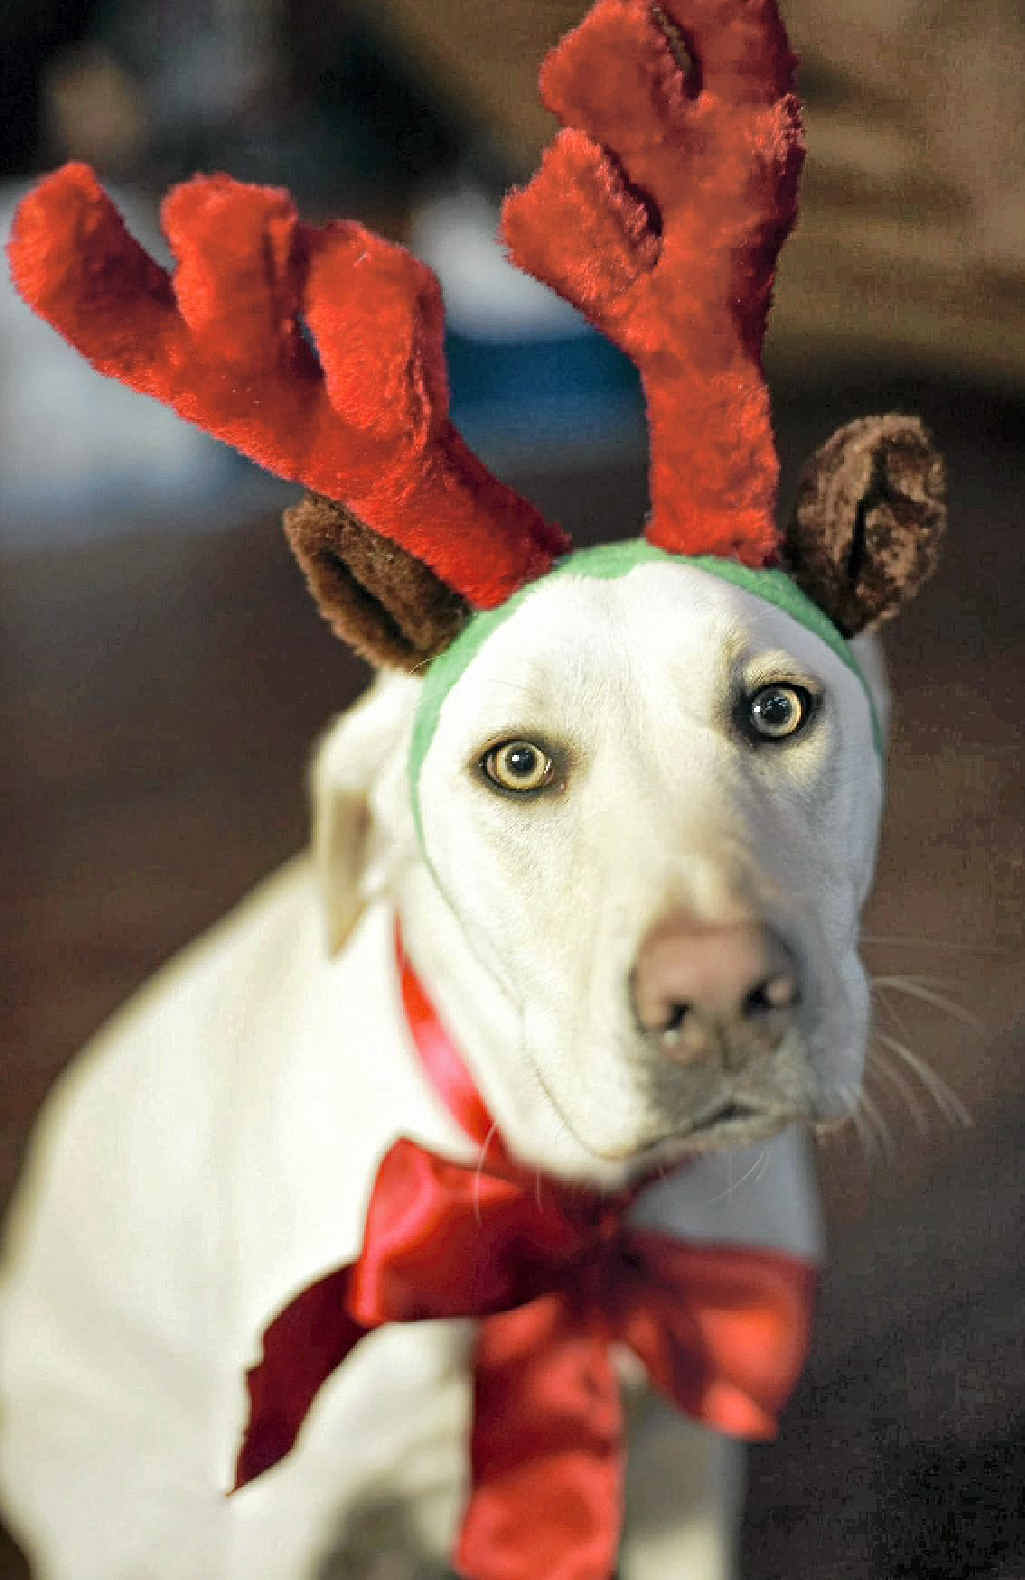 Some dogs hate loud noises (and being dressed up in costumes at Christmas).